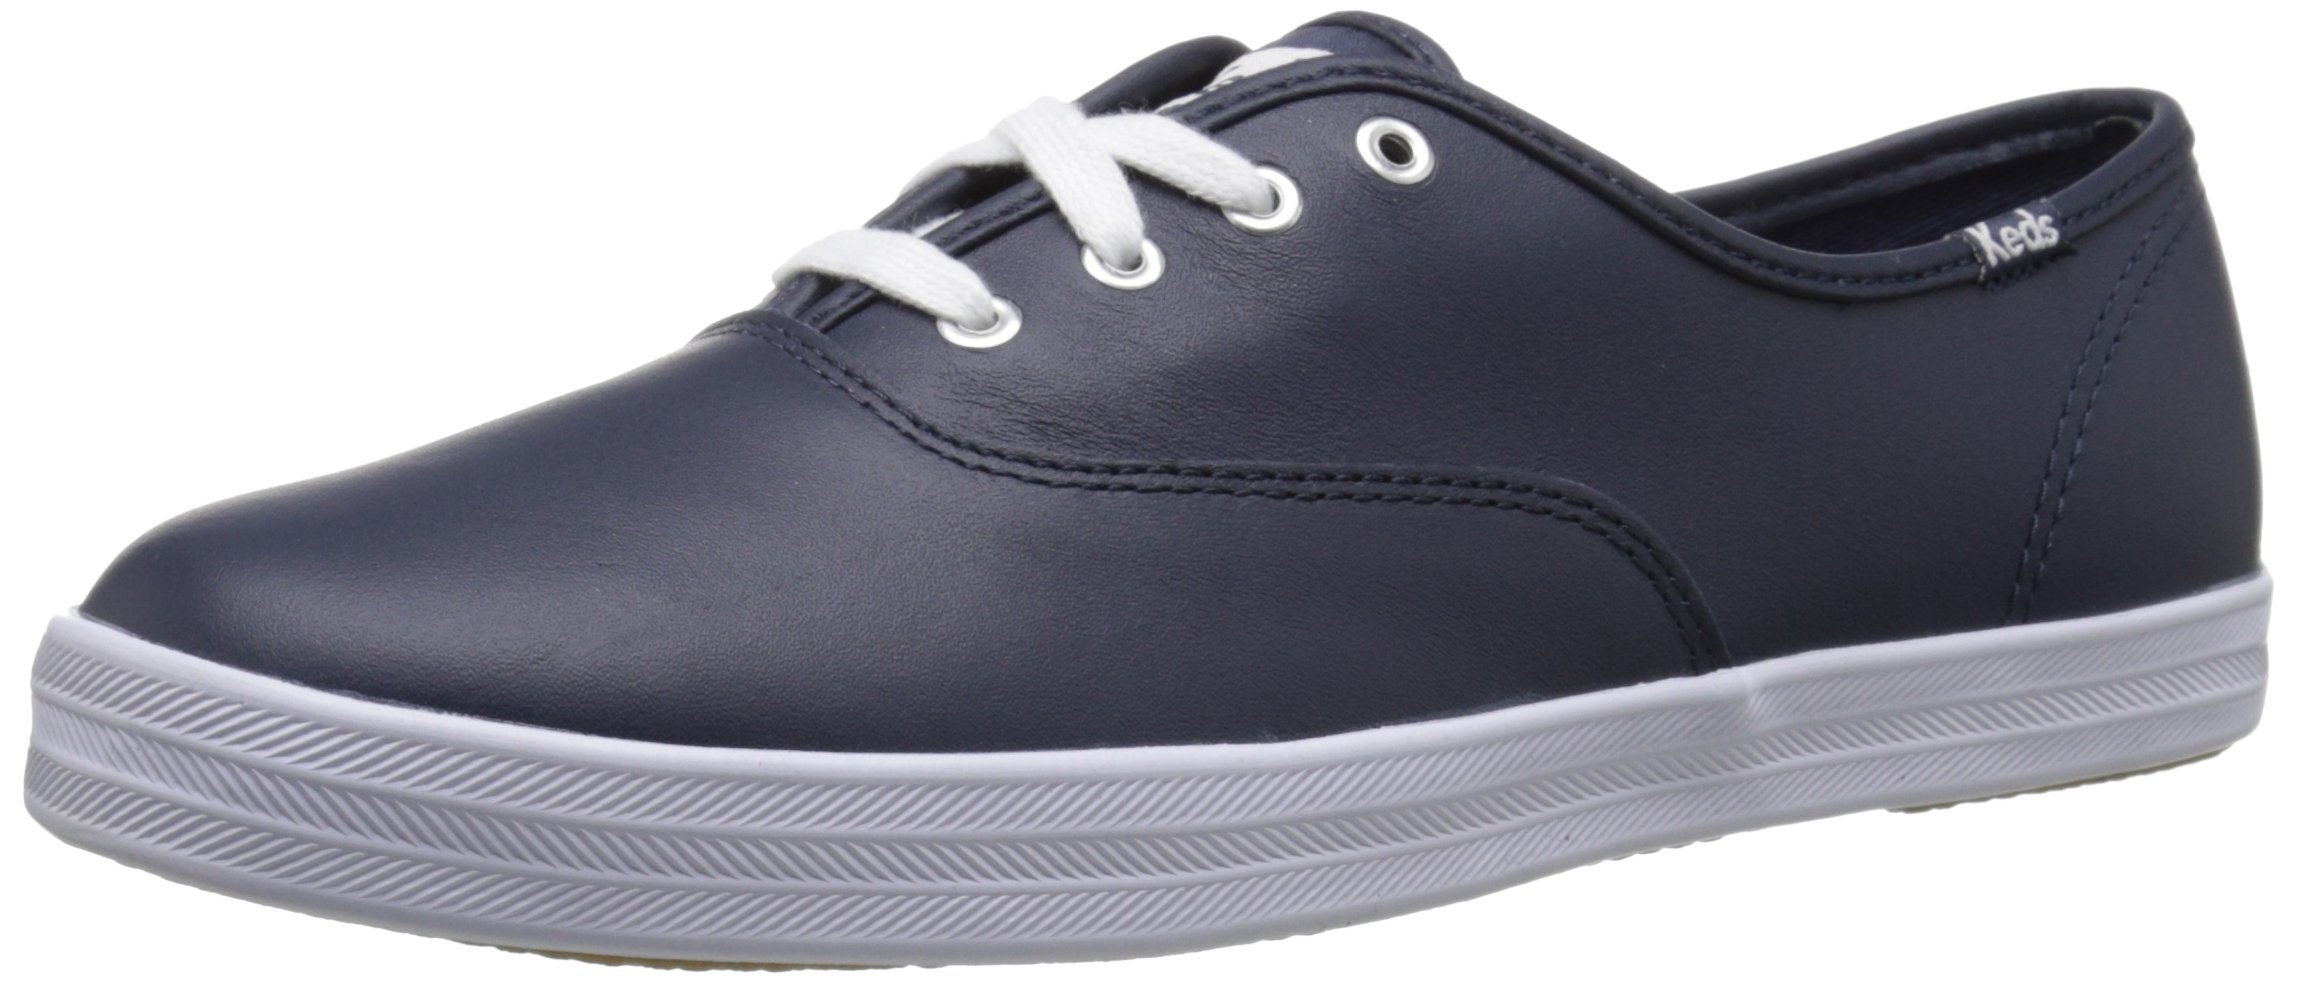 Keds Women's Champion Original Leather Sneaker,Navy Leather,8.5 M US